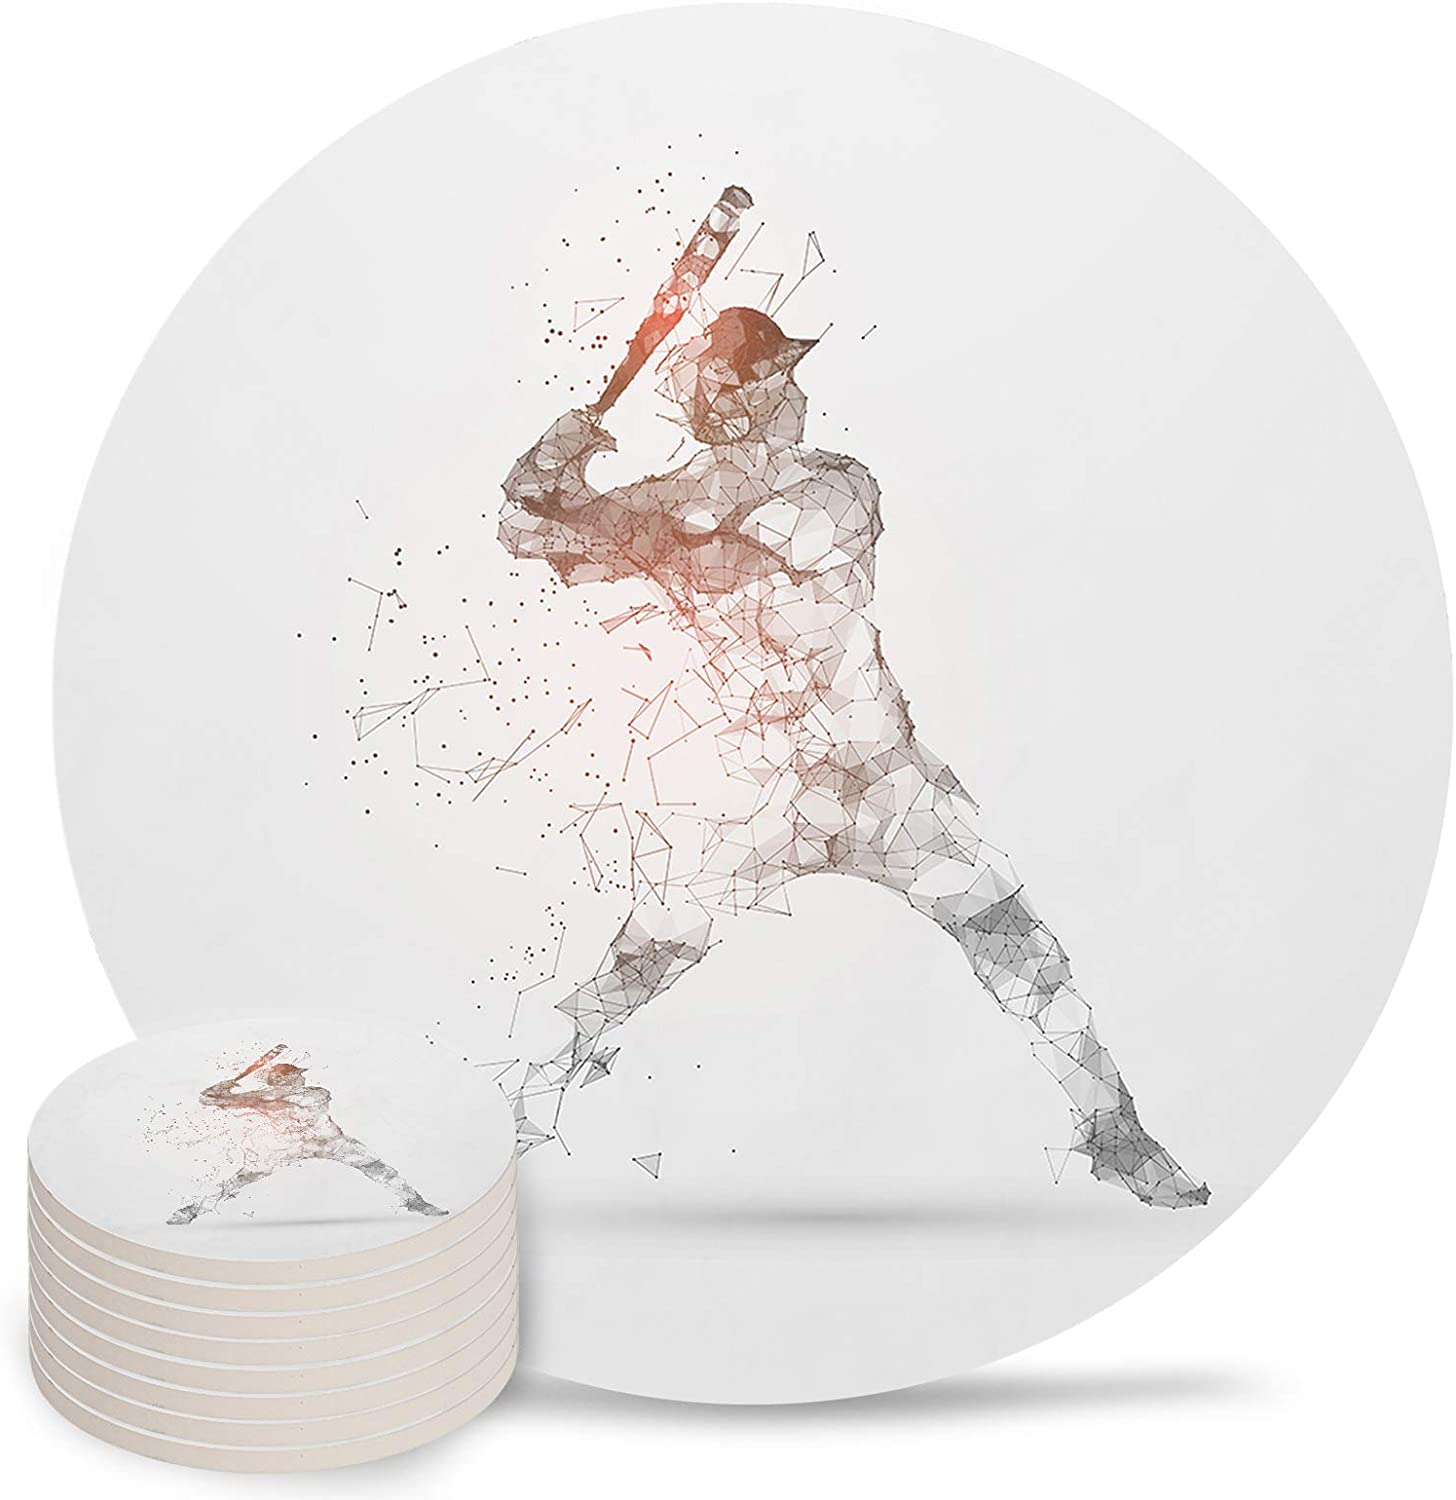 Max 41% OFF Sports Absorbent Coasters 8-Piece Drin for Ceramic Set Fashionable